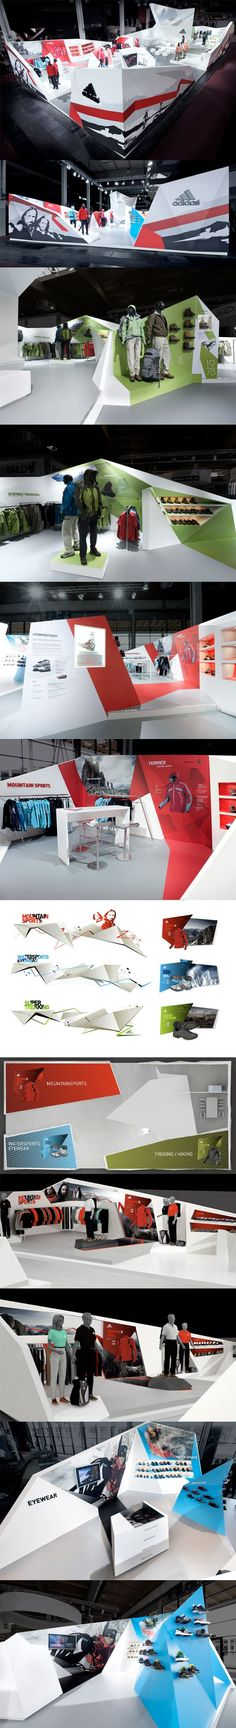 Interpretive & environmental leveraged in commercial application. Adidas Outdoor 2009